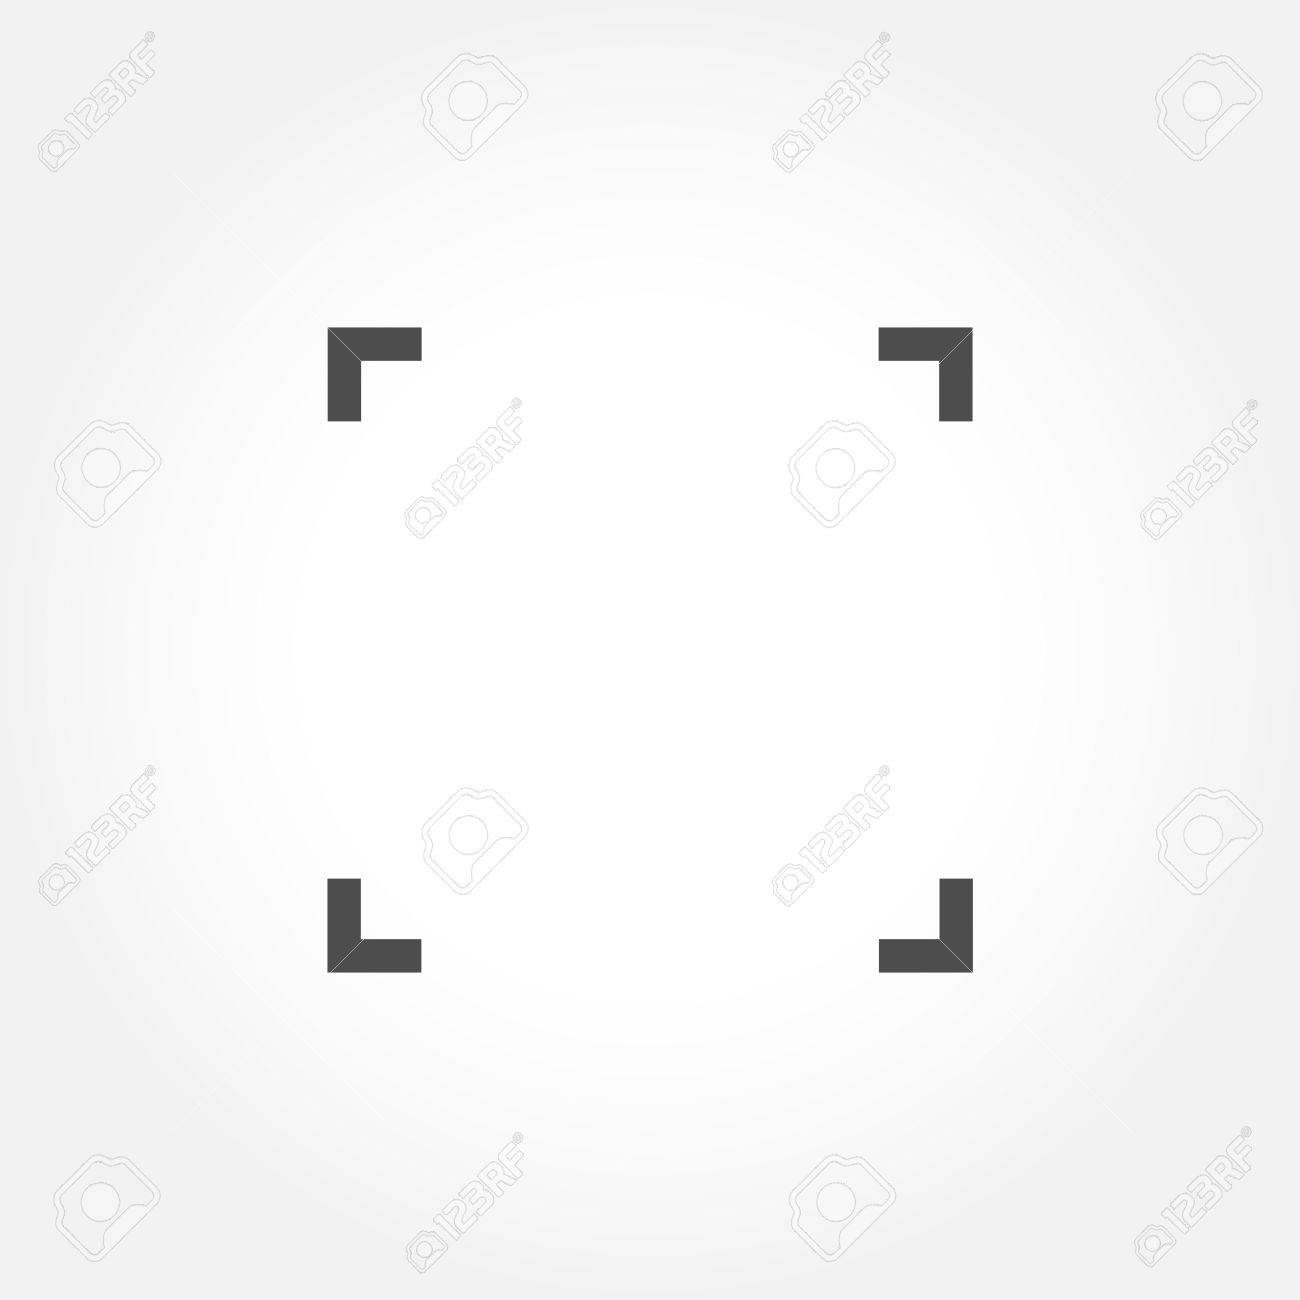 Empty Camera Focus Frame Royalty Free Cliparts, Vectors, And Stock ...